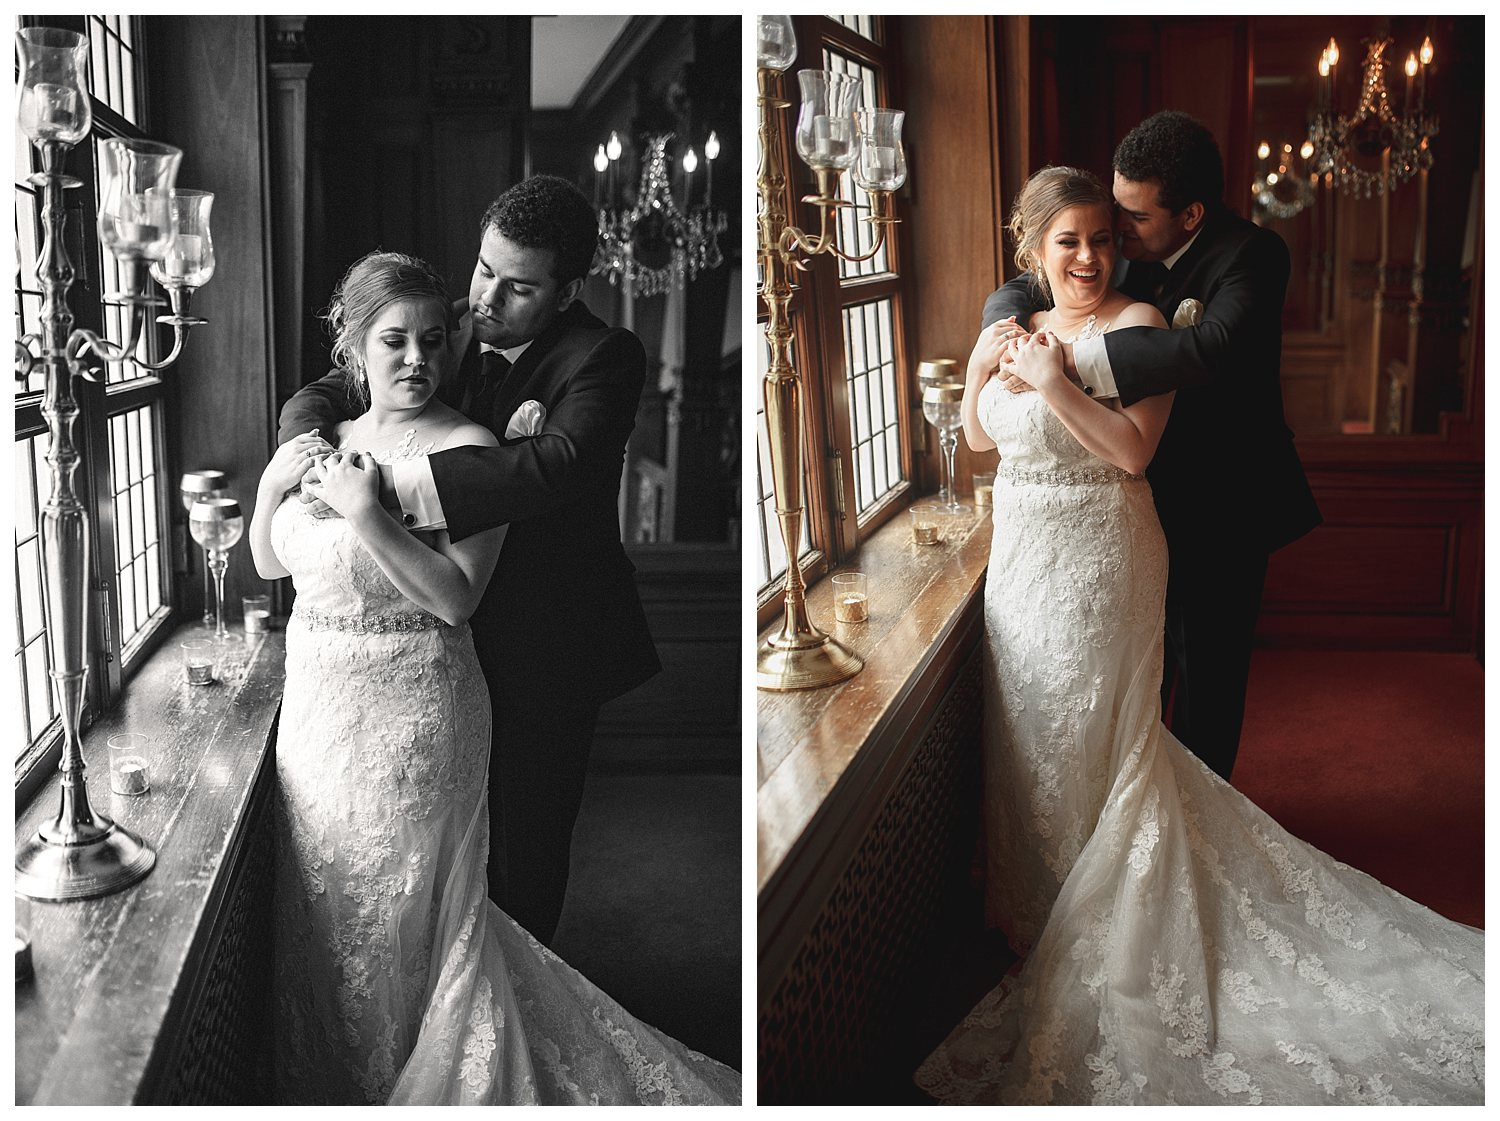 Kelsey_Diane_Photography_Loose_Mansion_Wedding_Photography_Kansas_City_Victor_Lyndsay_0124.jpg